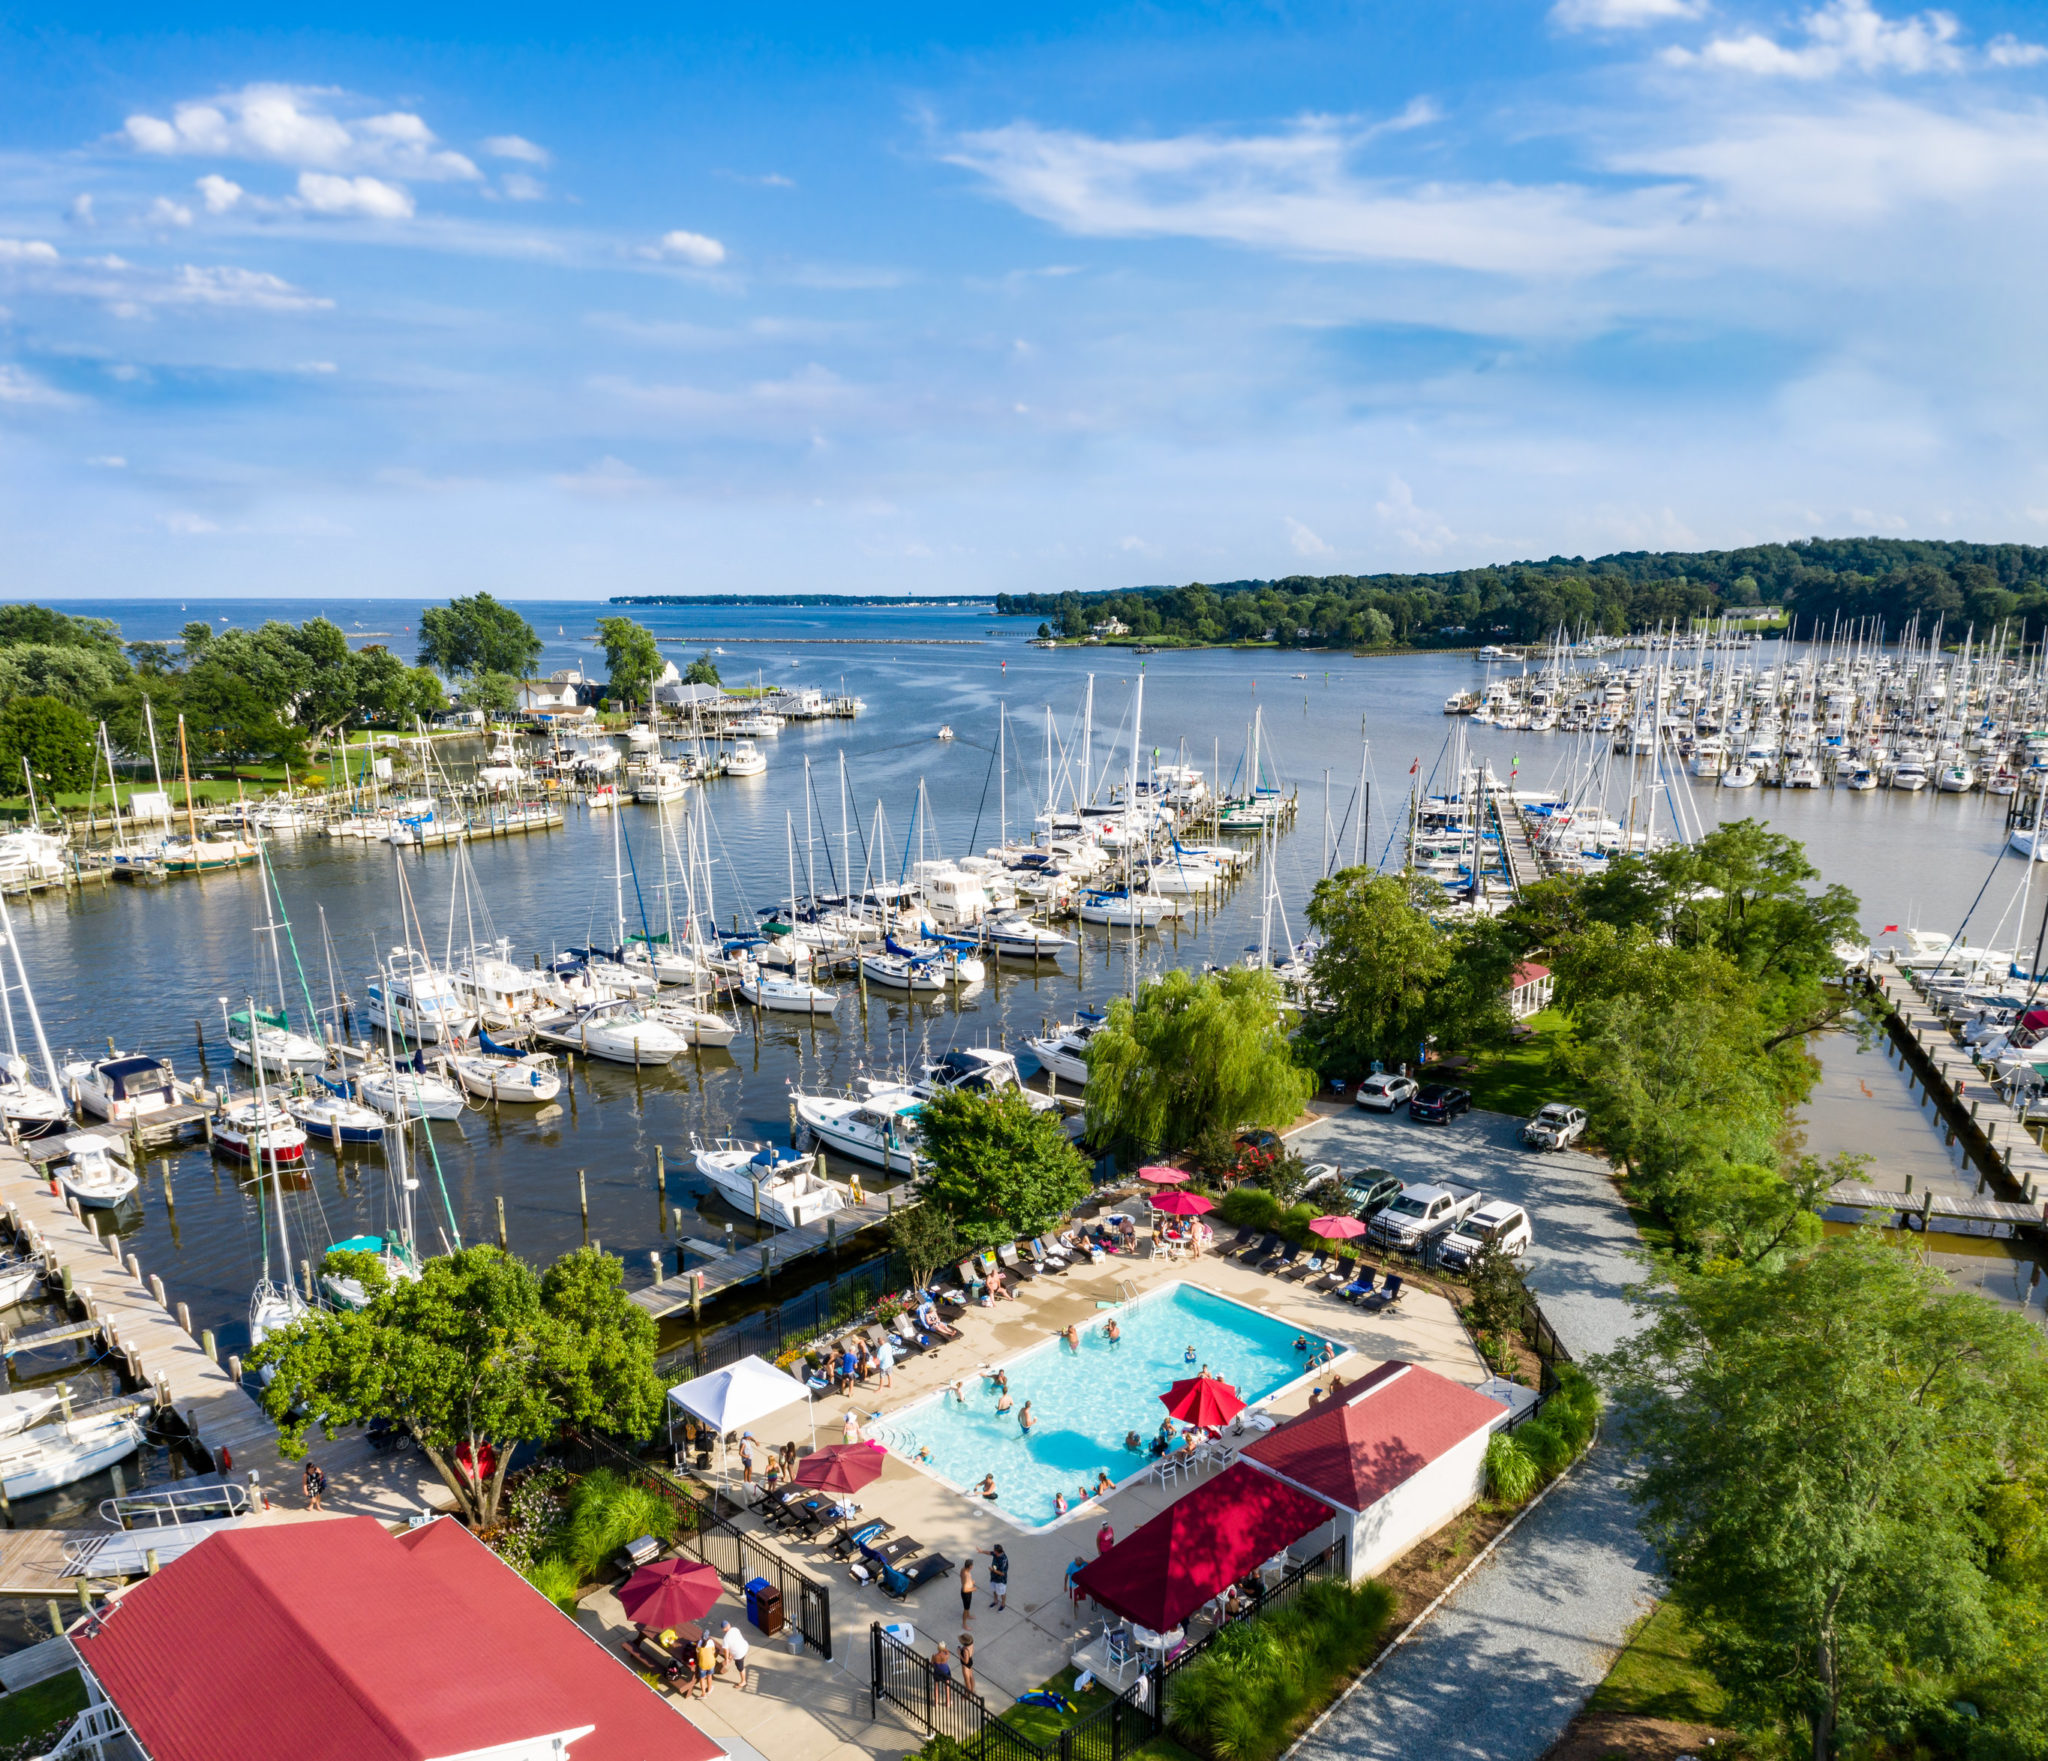 Visit Shipwright Harbor Marina in Deale, MD